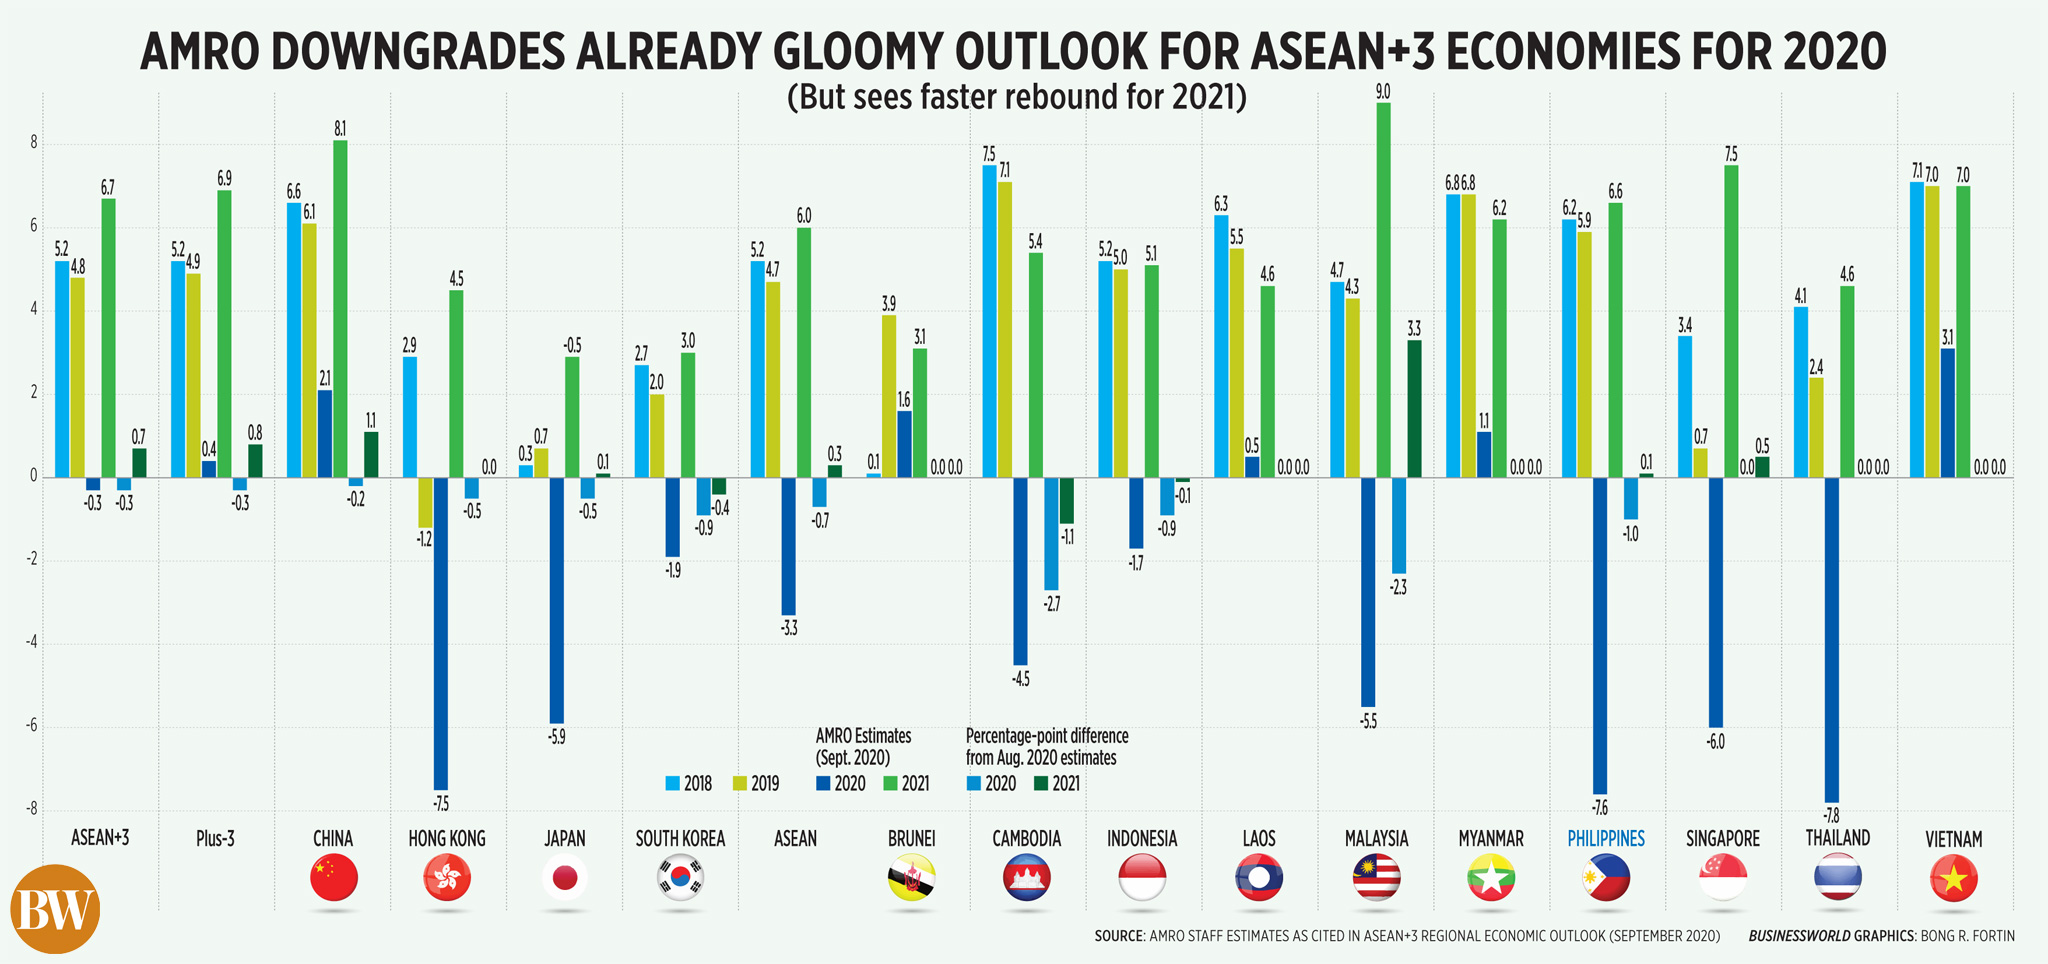 AMRO downgrades already gloomy outlook for ASEAN+3 economies for 2020